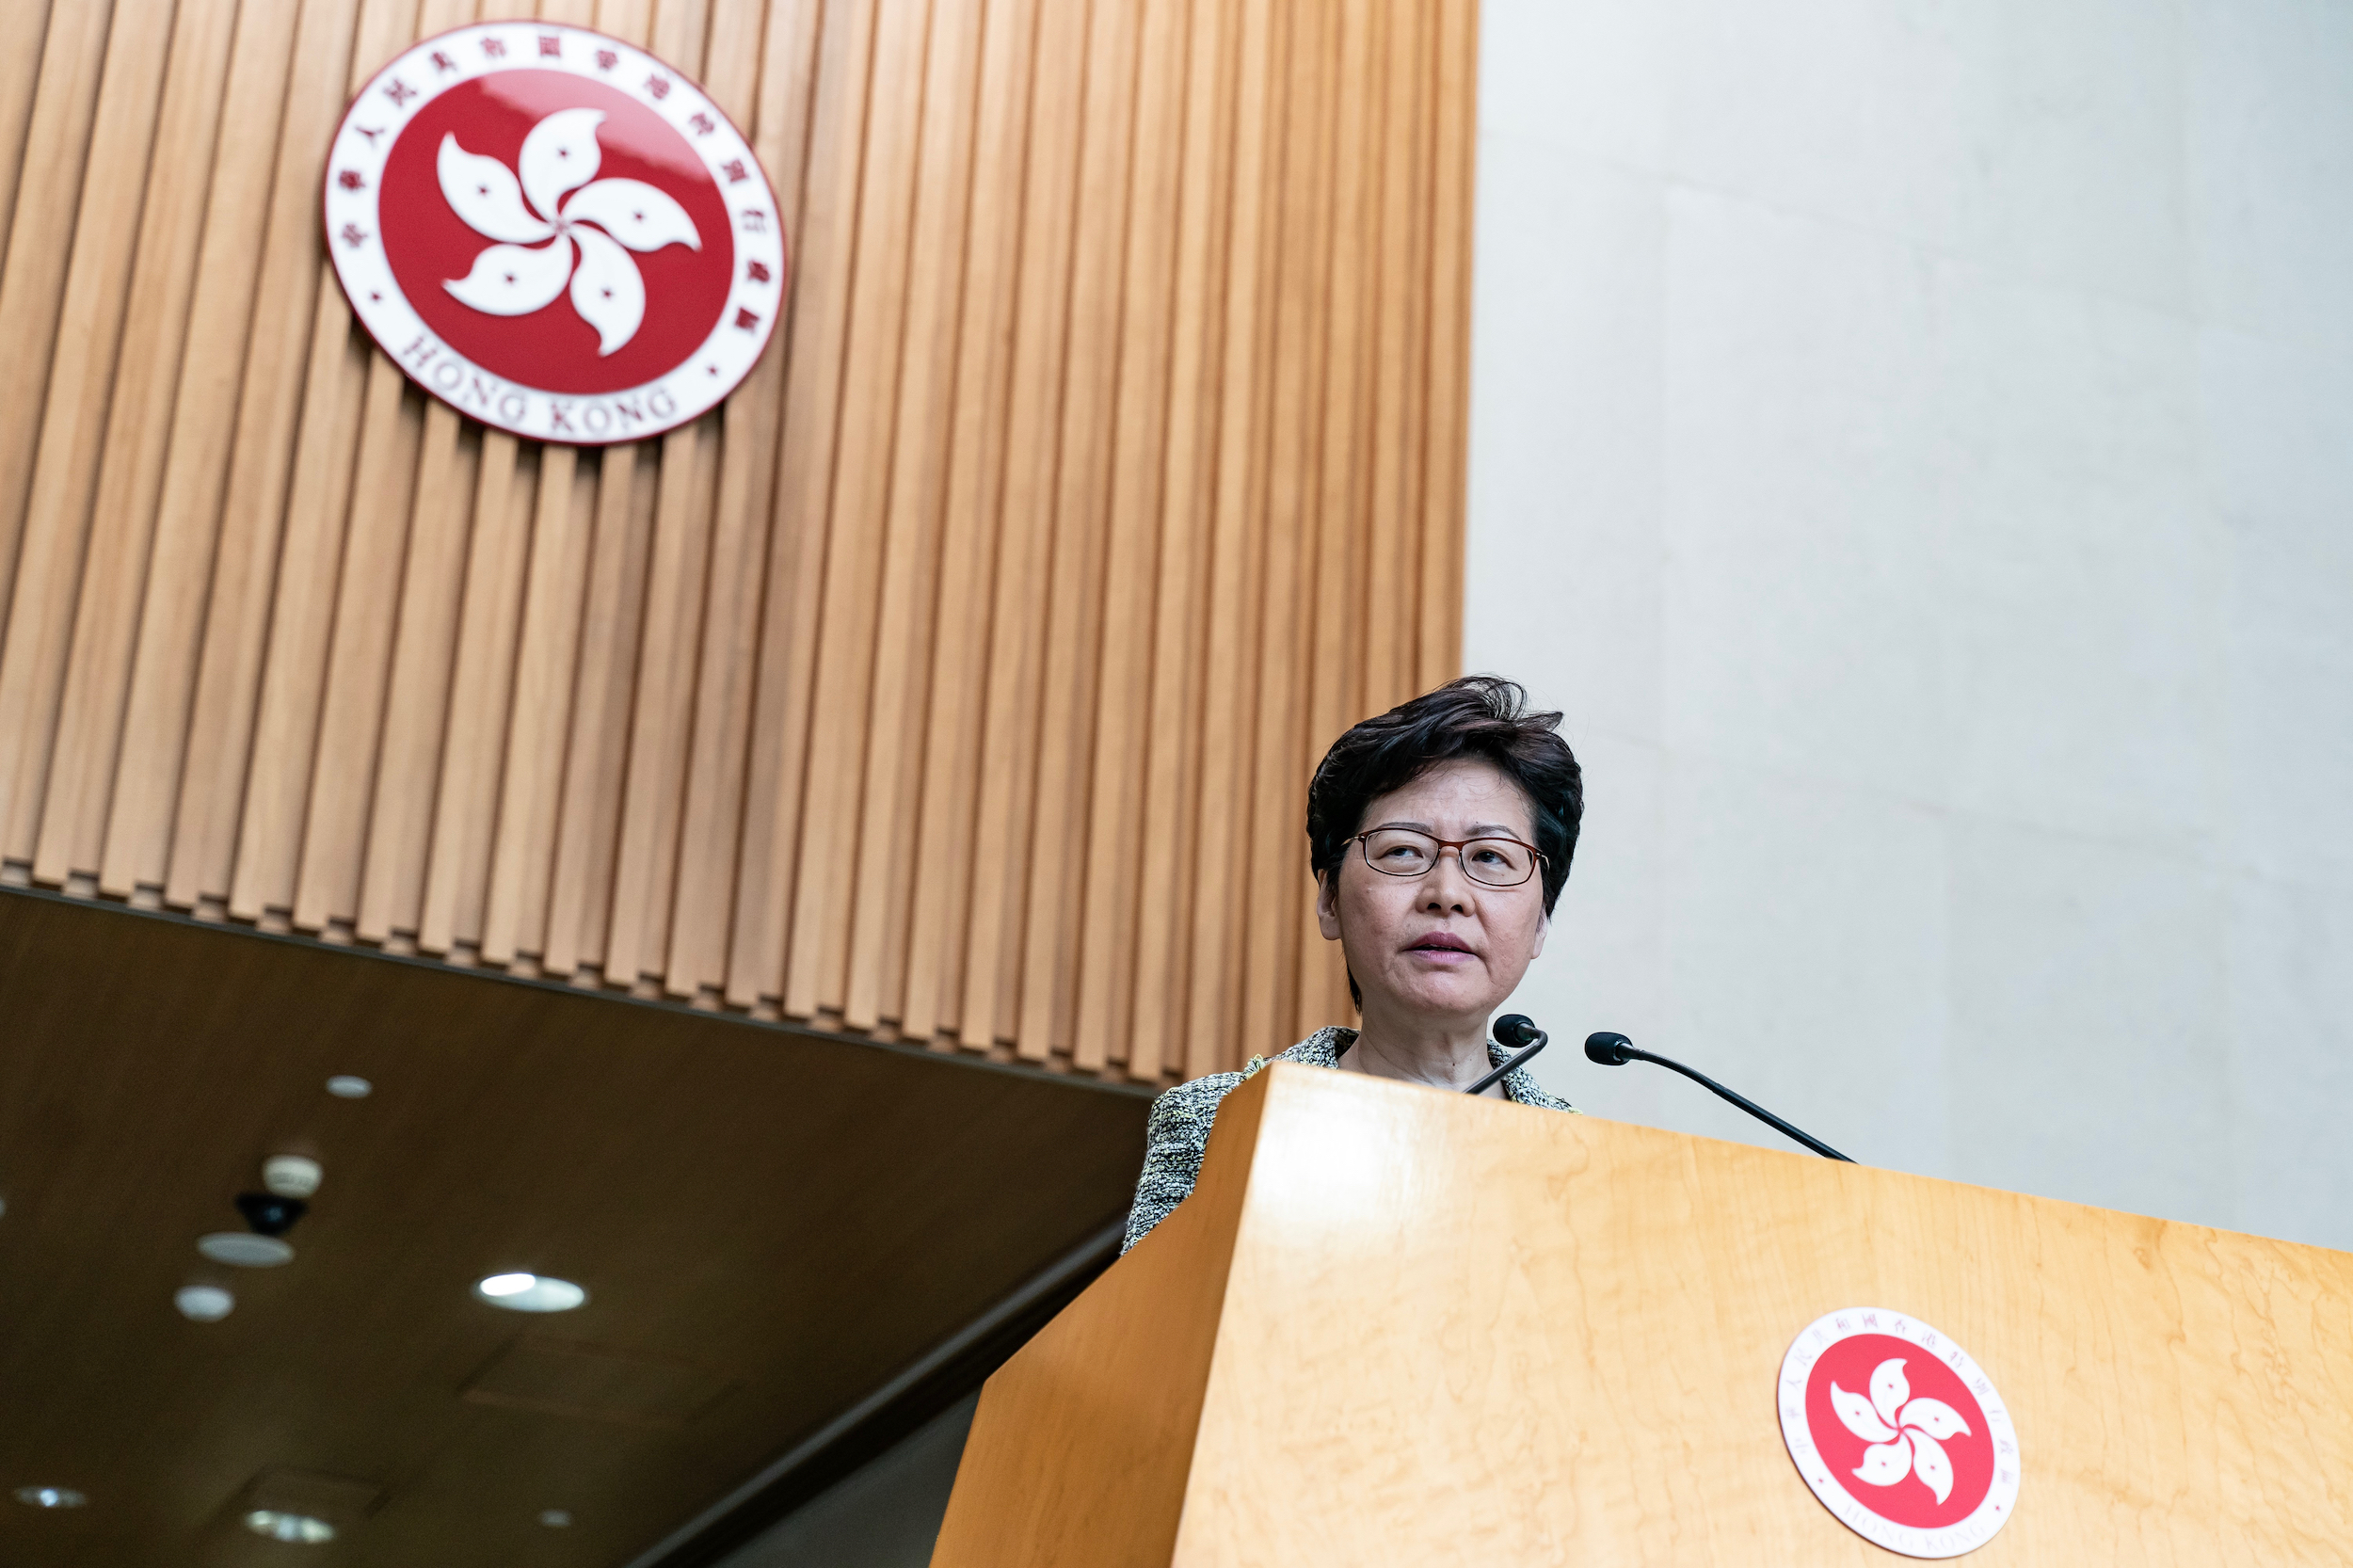 Hong Kong Chief Executive Carrie Lam speaks during a weekly press conference at Central Government Complex on September 24, 2019 in Hong Kong, China.